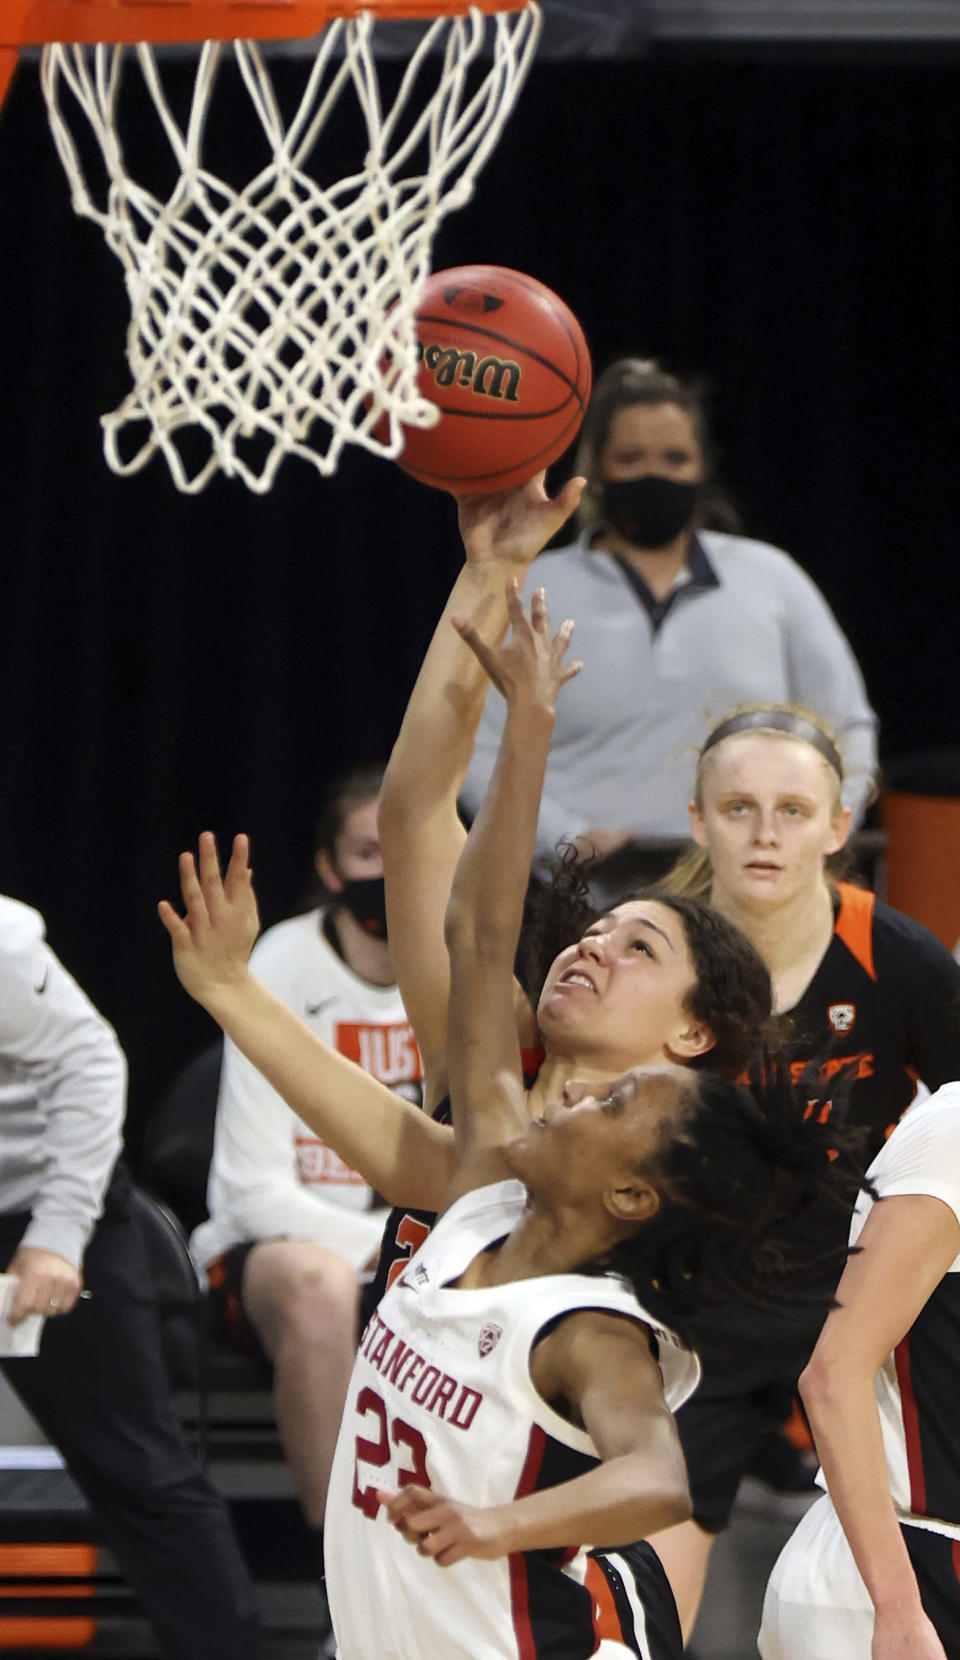 Oregon State guard Talia Von Oelhoffen (22) shoots as Stanford guard Kiana Williams (23) defends during the second half of an NCAA college basketball game in the semifinal round of the Pac-12 women's tournament Friday, March 5, 2021, in Las Vegas. (AP Photo/Isaac Brekken)